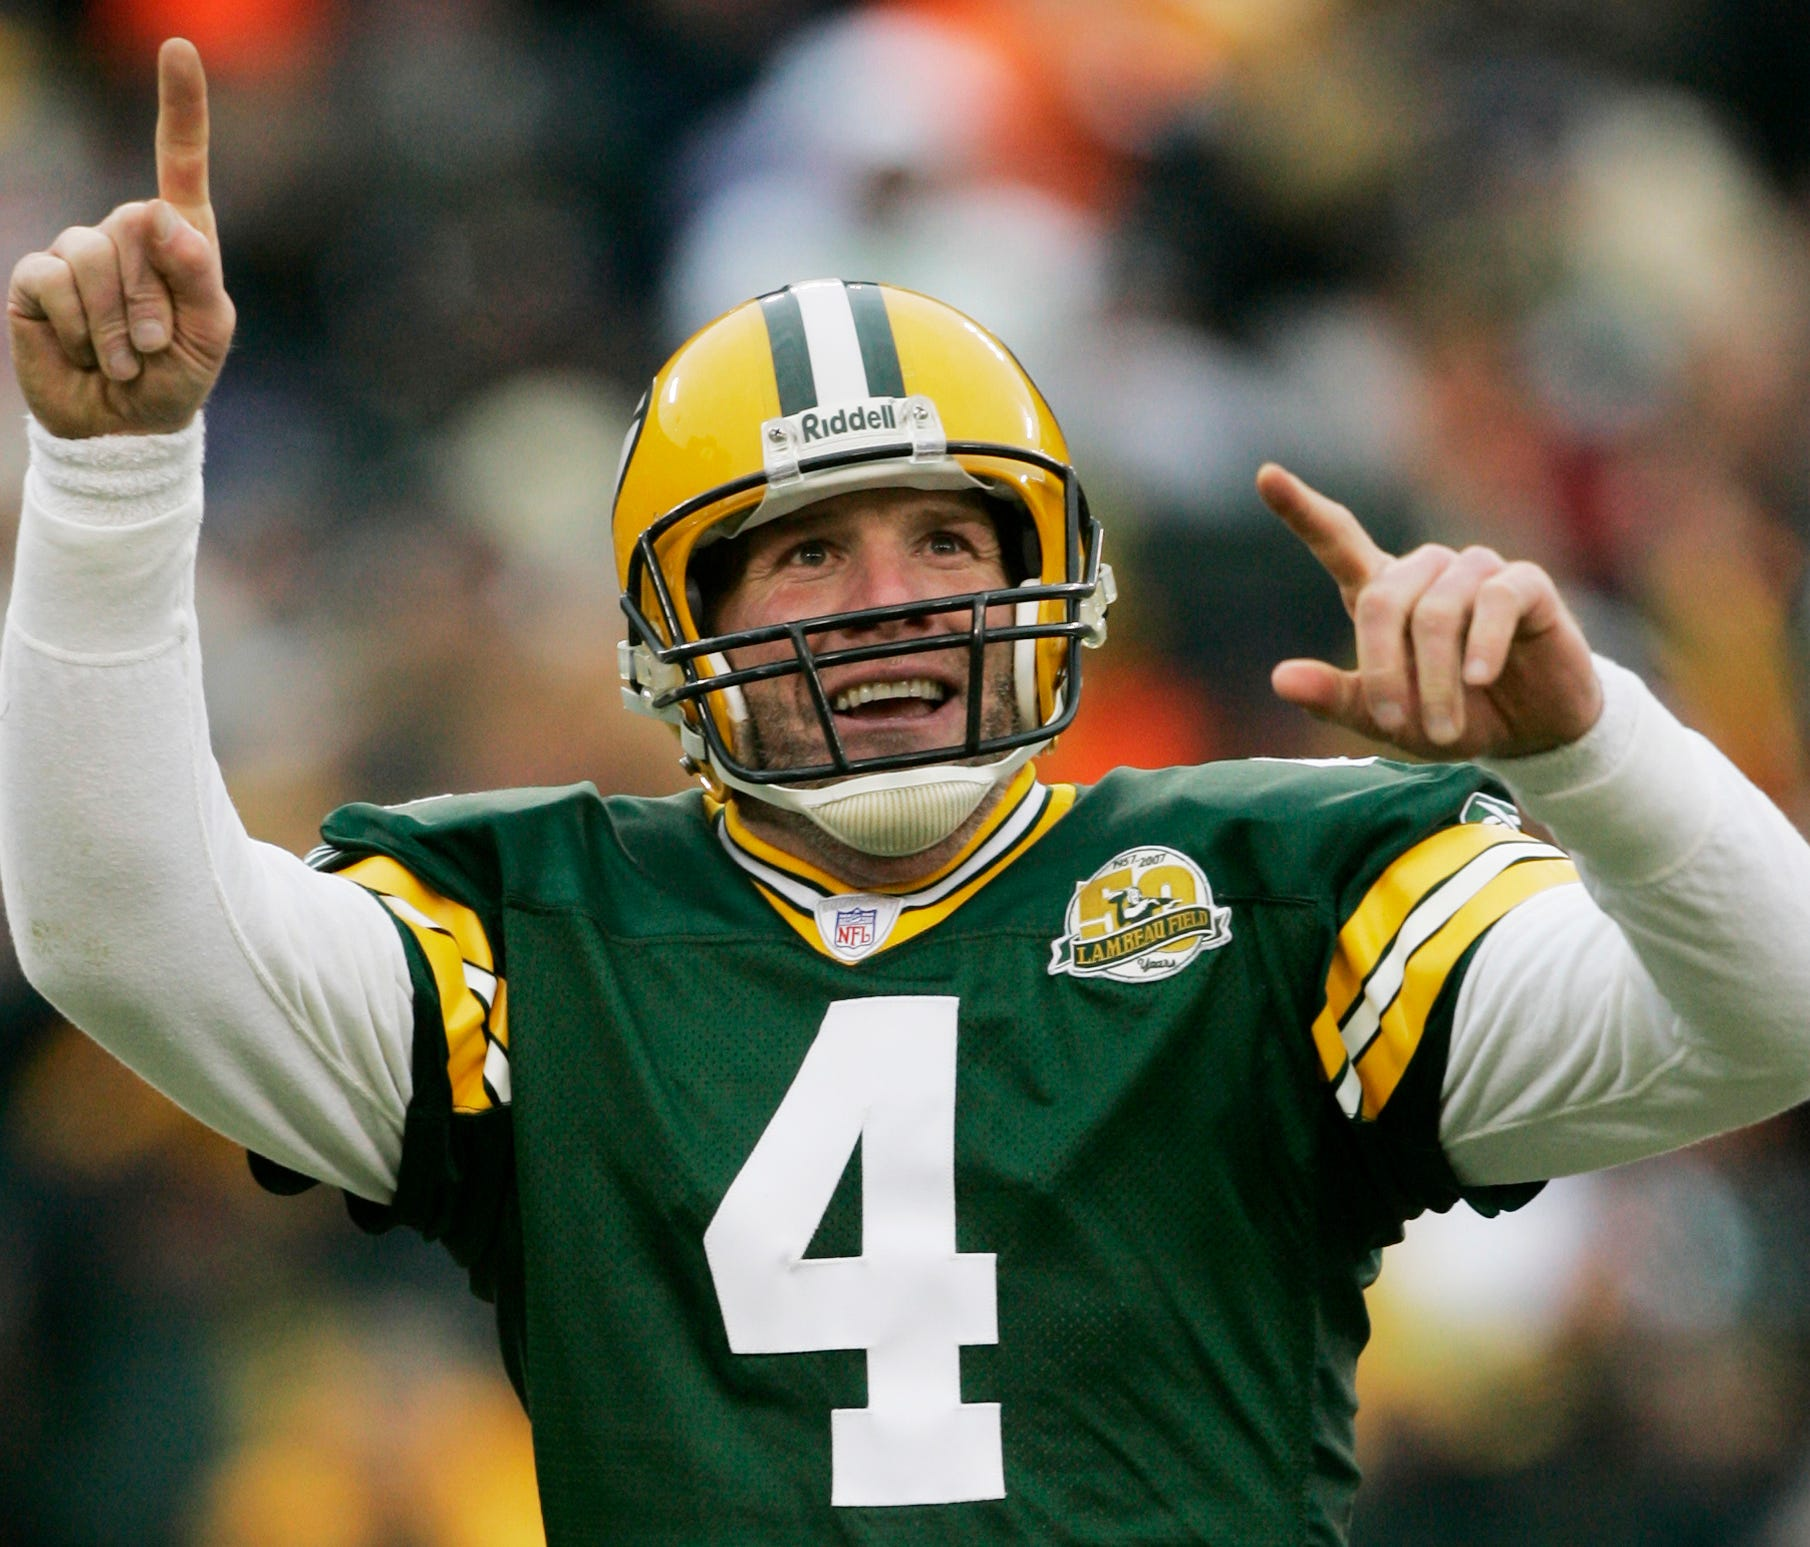 FILE - In this Dec. 9, 2007 file photo, Green Bay Packers quarterback Brett Favre reacts to a 46-yard touchdown pass to tight end Donald Lee during the second half of an NFL football game against the Oakland Raiders in Green Bay, Wis.  Favre will be